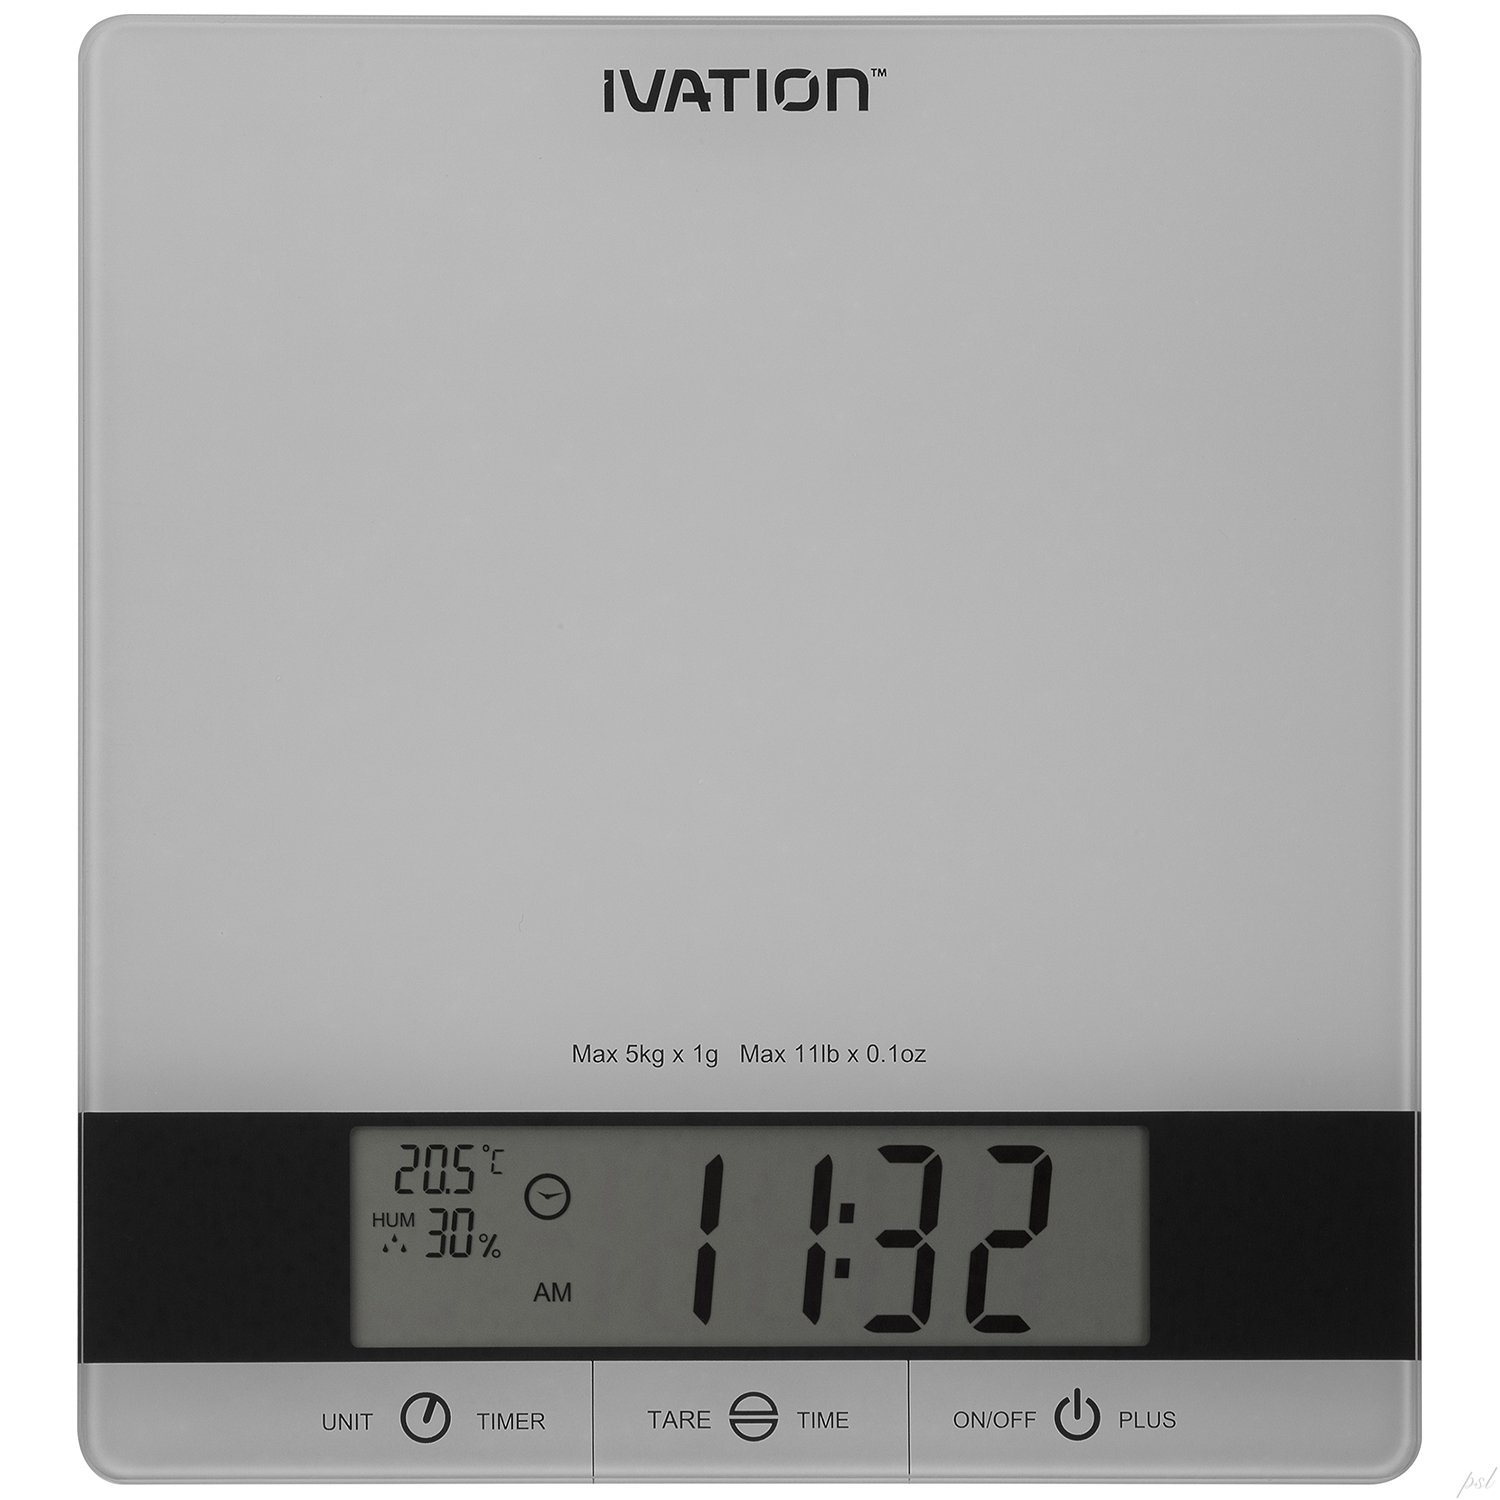 Ivation Digital Kitchen Scale w/Timer, Clock, Temperature & RH Levels - Provides Super Accurate Readings in Ounce, Fluid Ounce, Milliliter, Pound  Ounce & Gram Weight Units - Features 11-Pound Capacity & One-Button Tare Setting - Silver